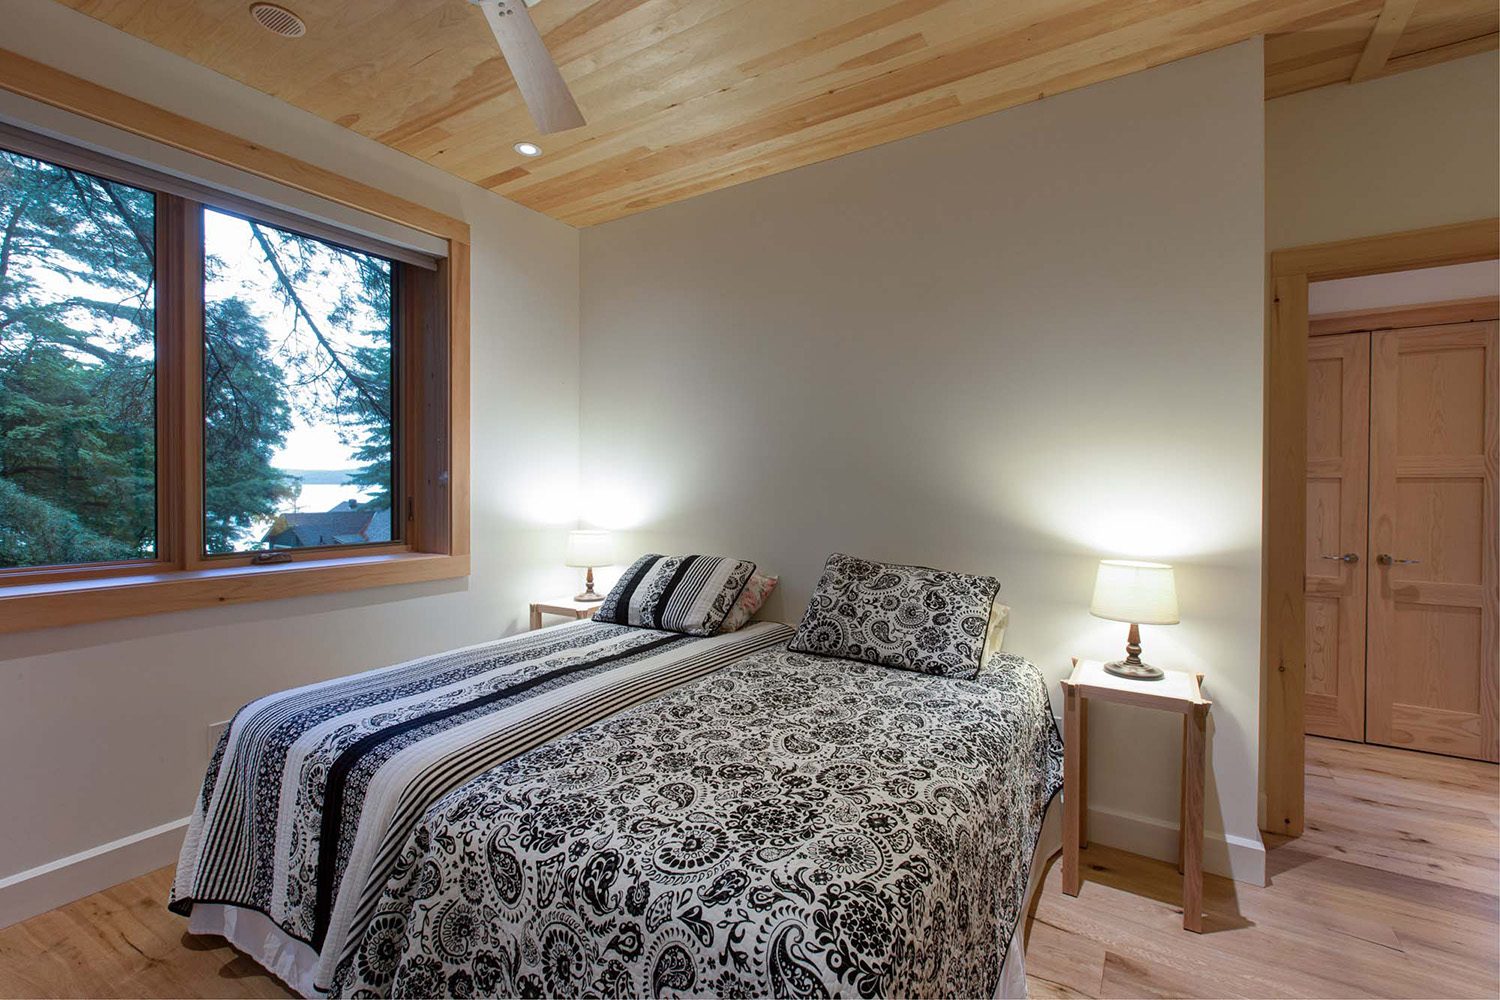 Cottage guest bedroom with modern decor and naturally finished wood ceilings and door and window trim